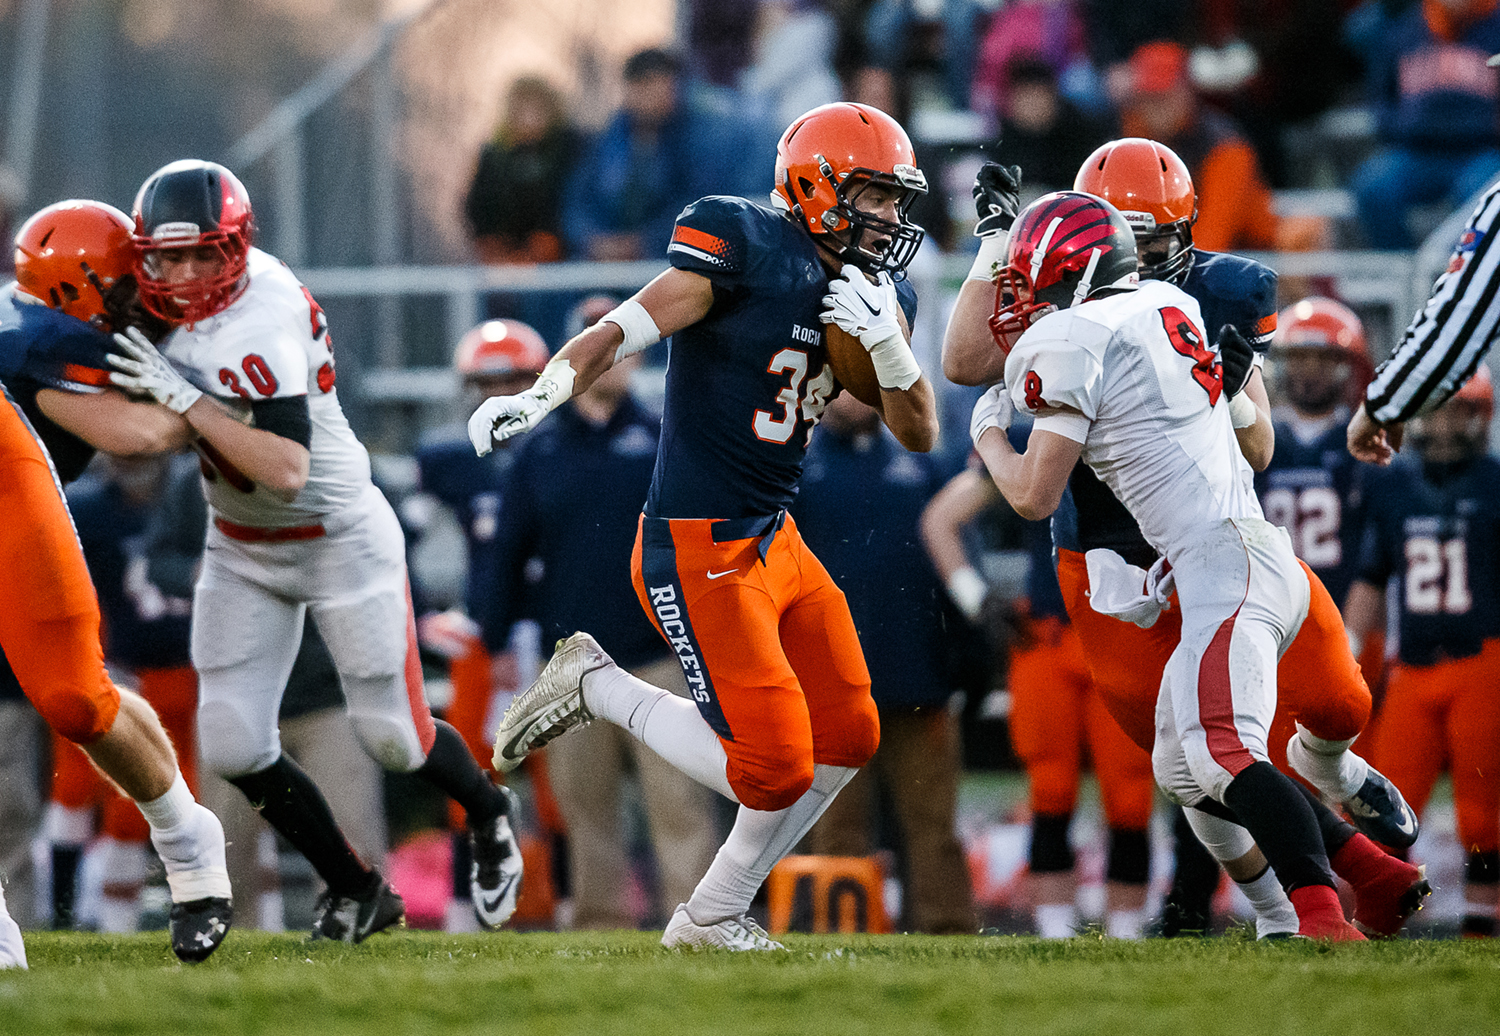 Rochester's Evan Sembell (34) bursts through a hole in the Mt. Zion defense on a rush in the first half during the first round of the Class 4A playoffs at Rocket Booster Field, Saturday, Nov. 1, 2014, in Rochester, Ill. Justin L. Fowler/The State Journal-Register